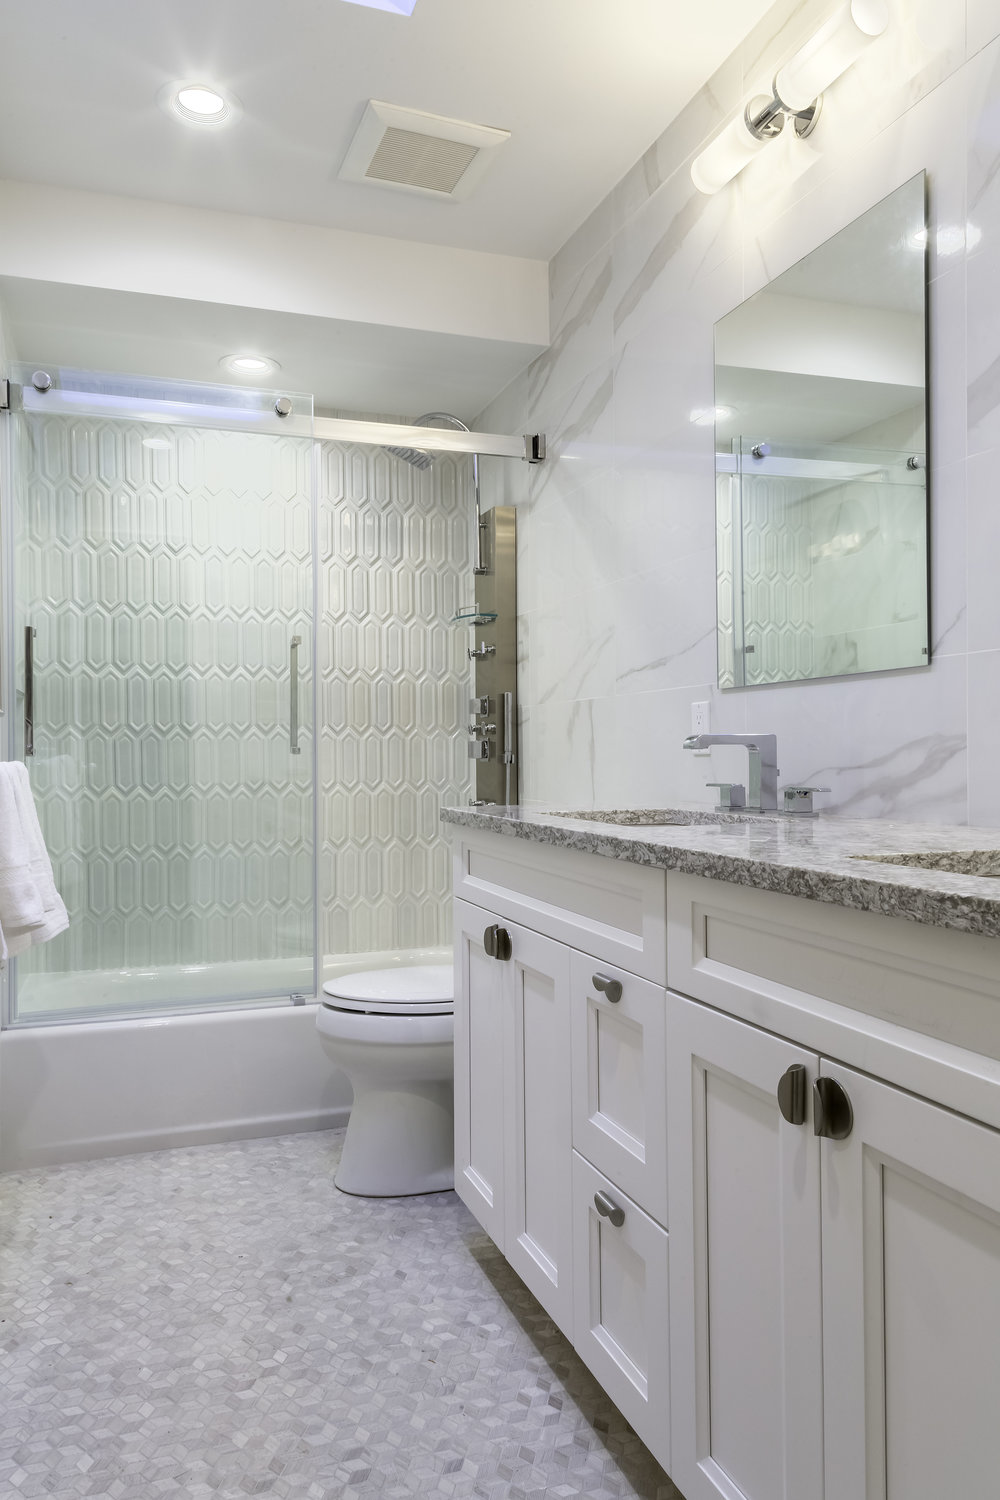 Bright bathroom with marble counter and double sink